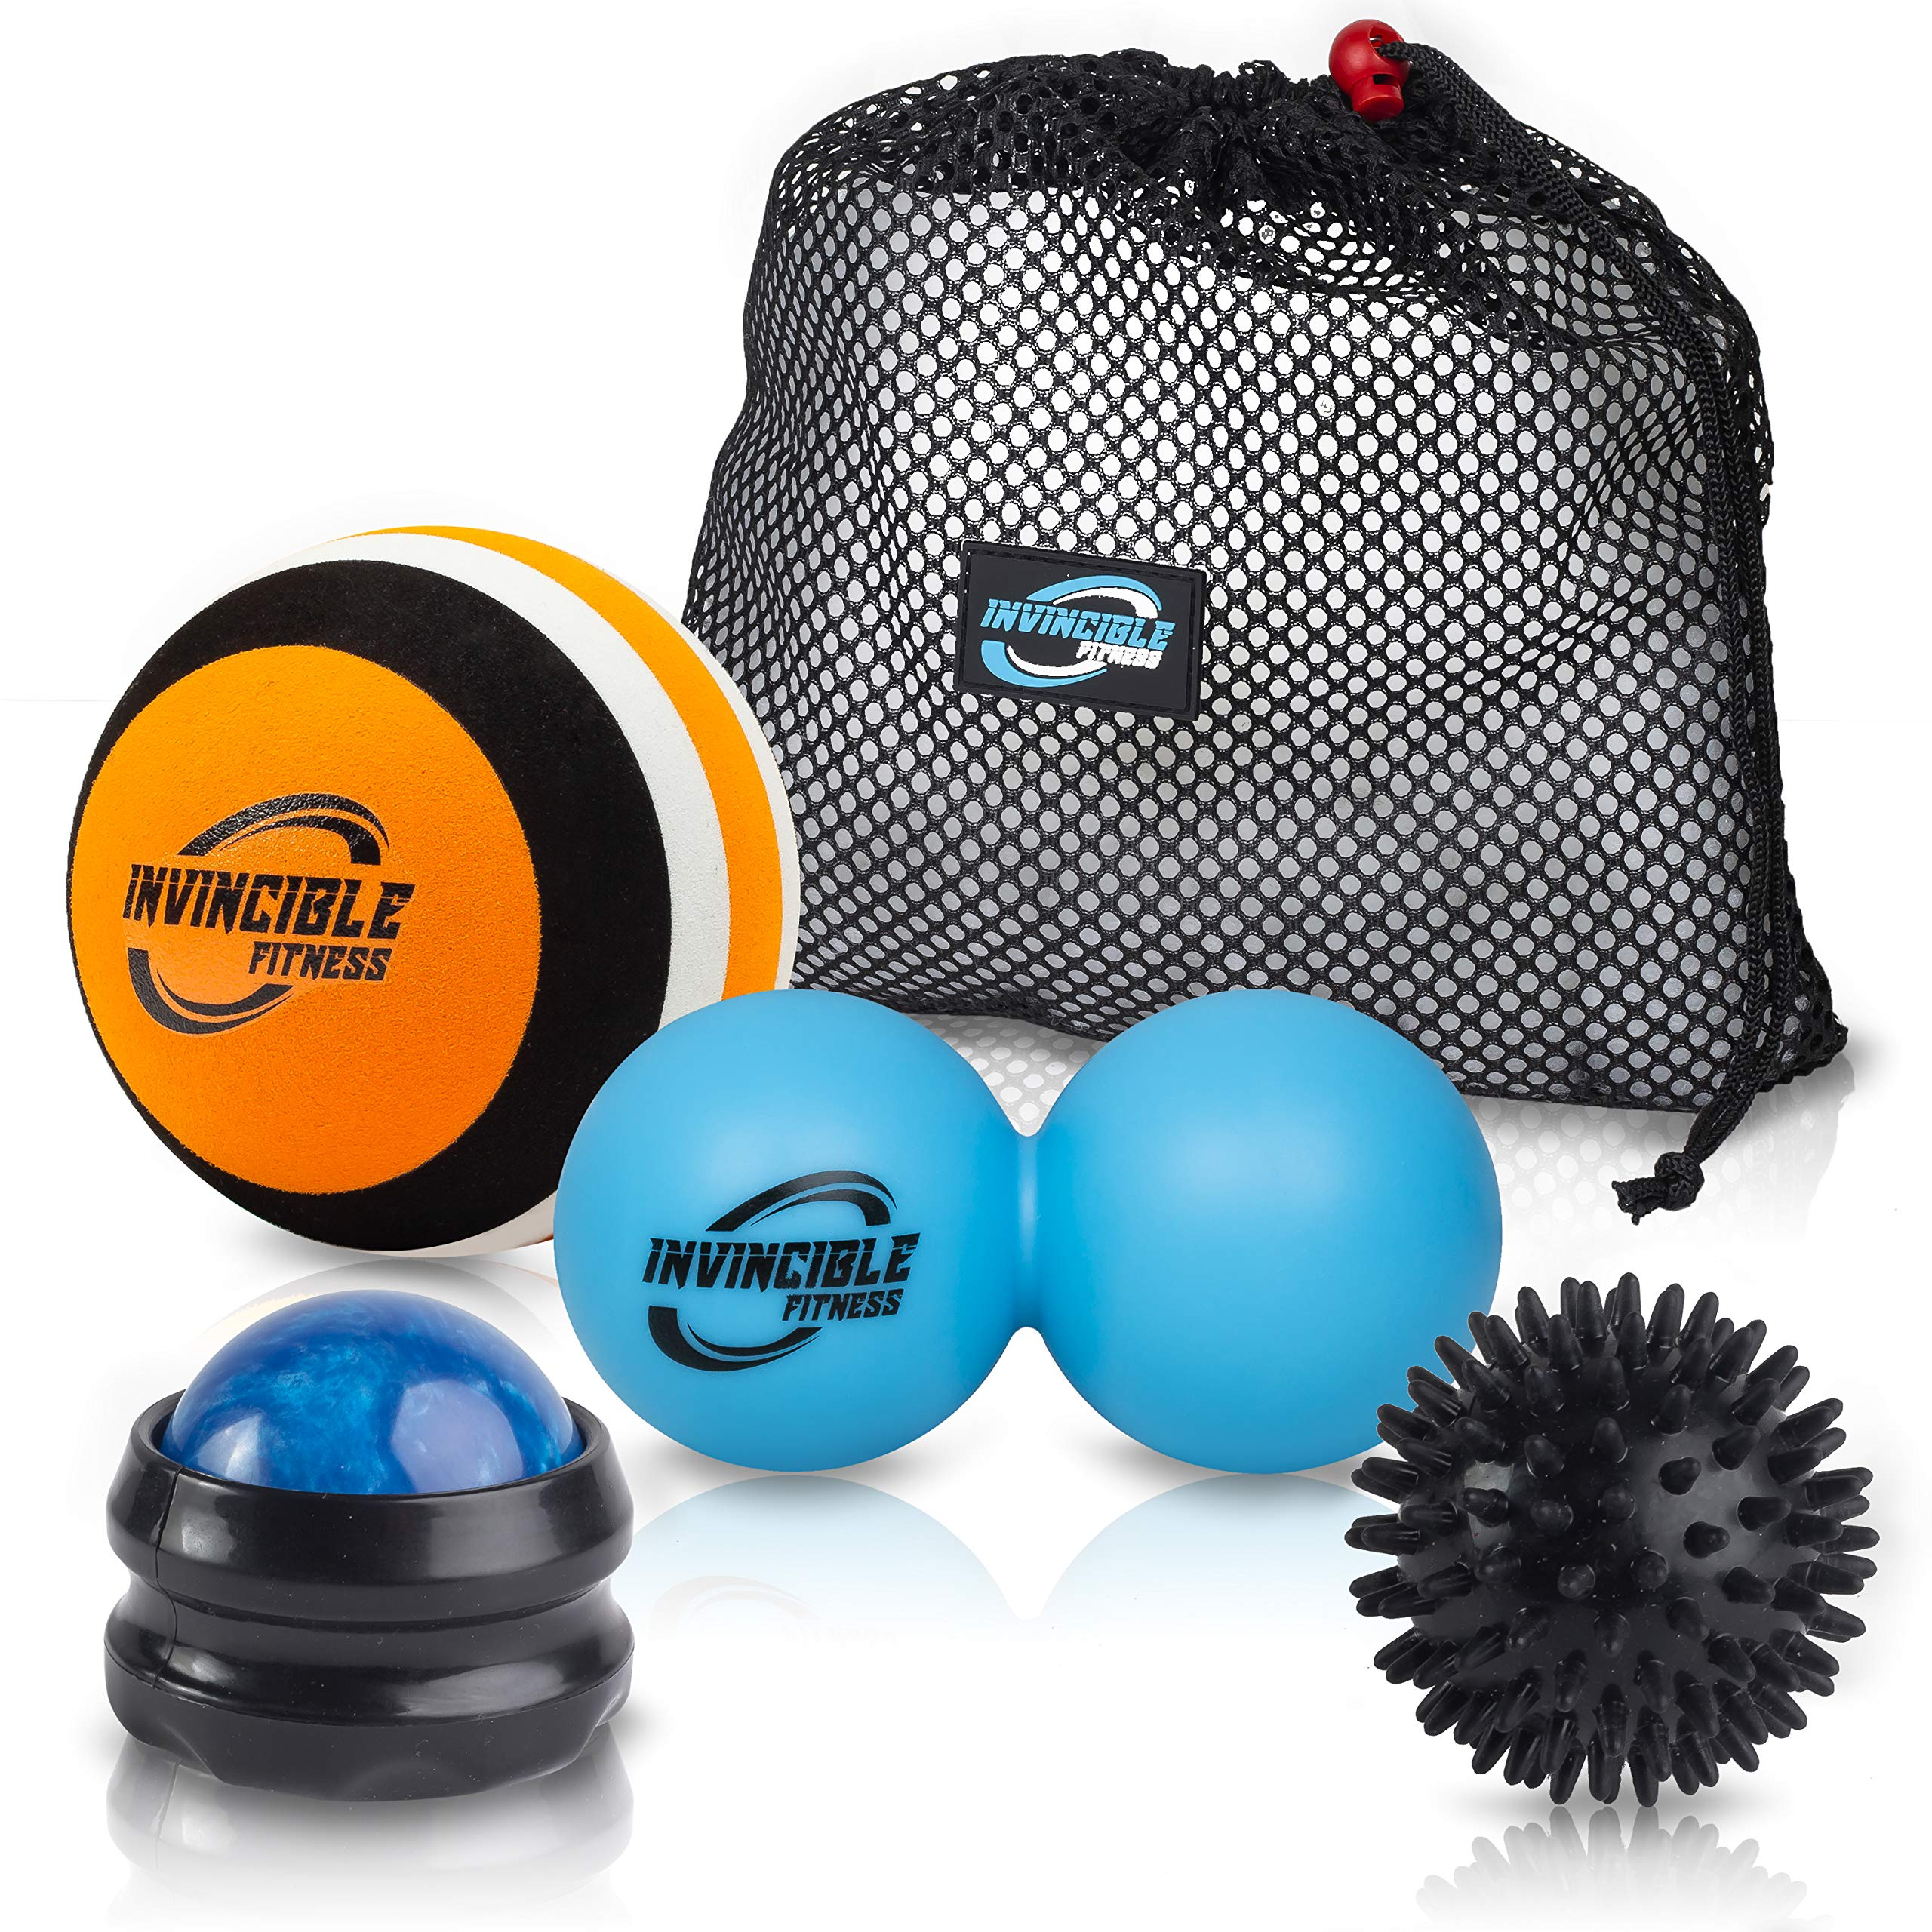 Invincible Fitness Therapy Massage Balls Set, Trigger Point Ball, Double Peanut Lacrosse Massager, Manual Muscle Roller Massage Ball, Spiky, Ideal for Self-Myofascial Release, Deep Tissue, Acupressure by Invincible Fitness